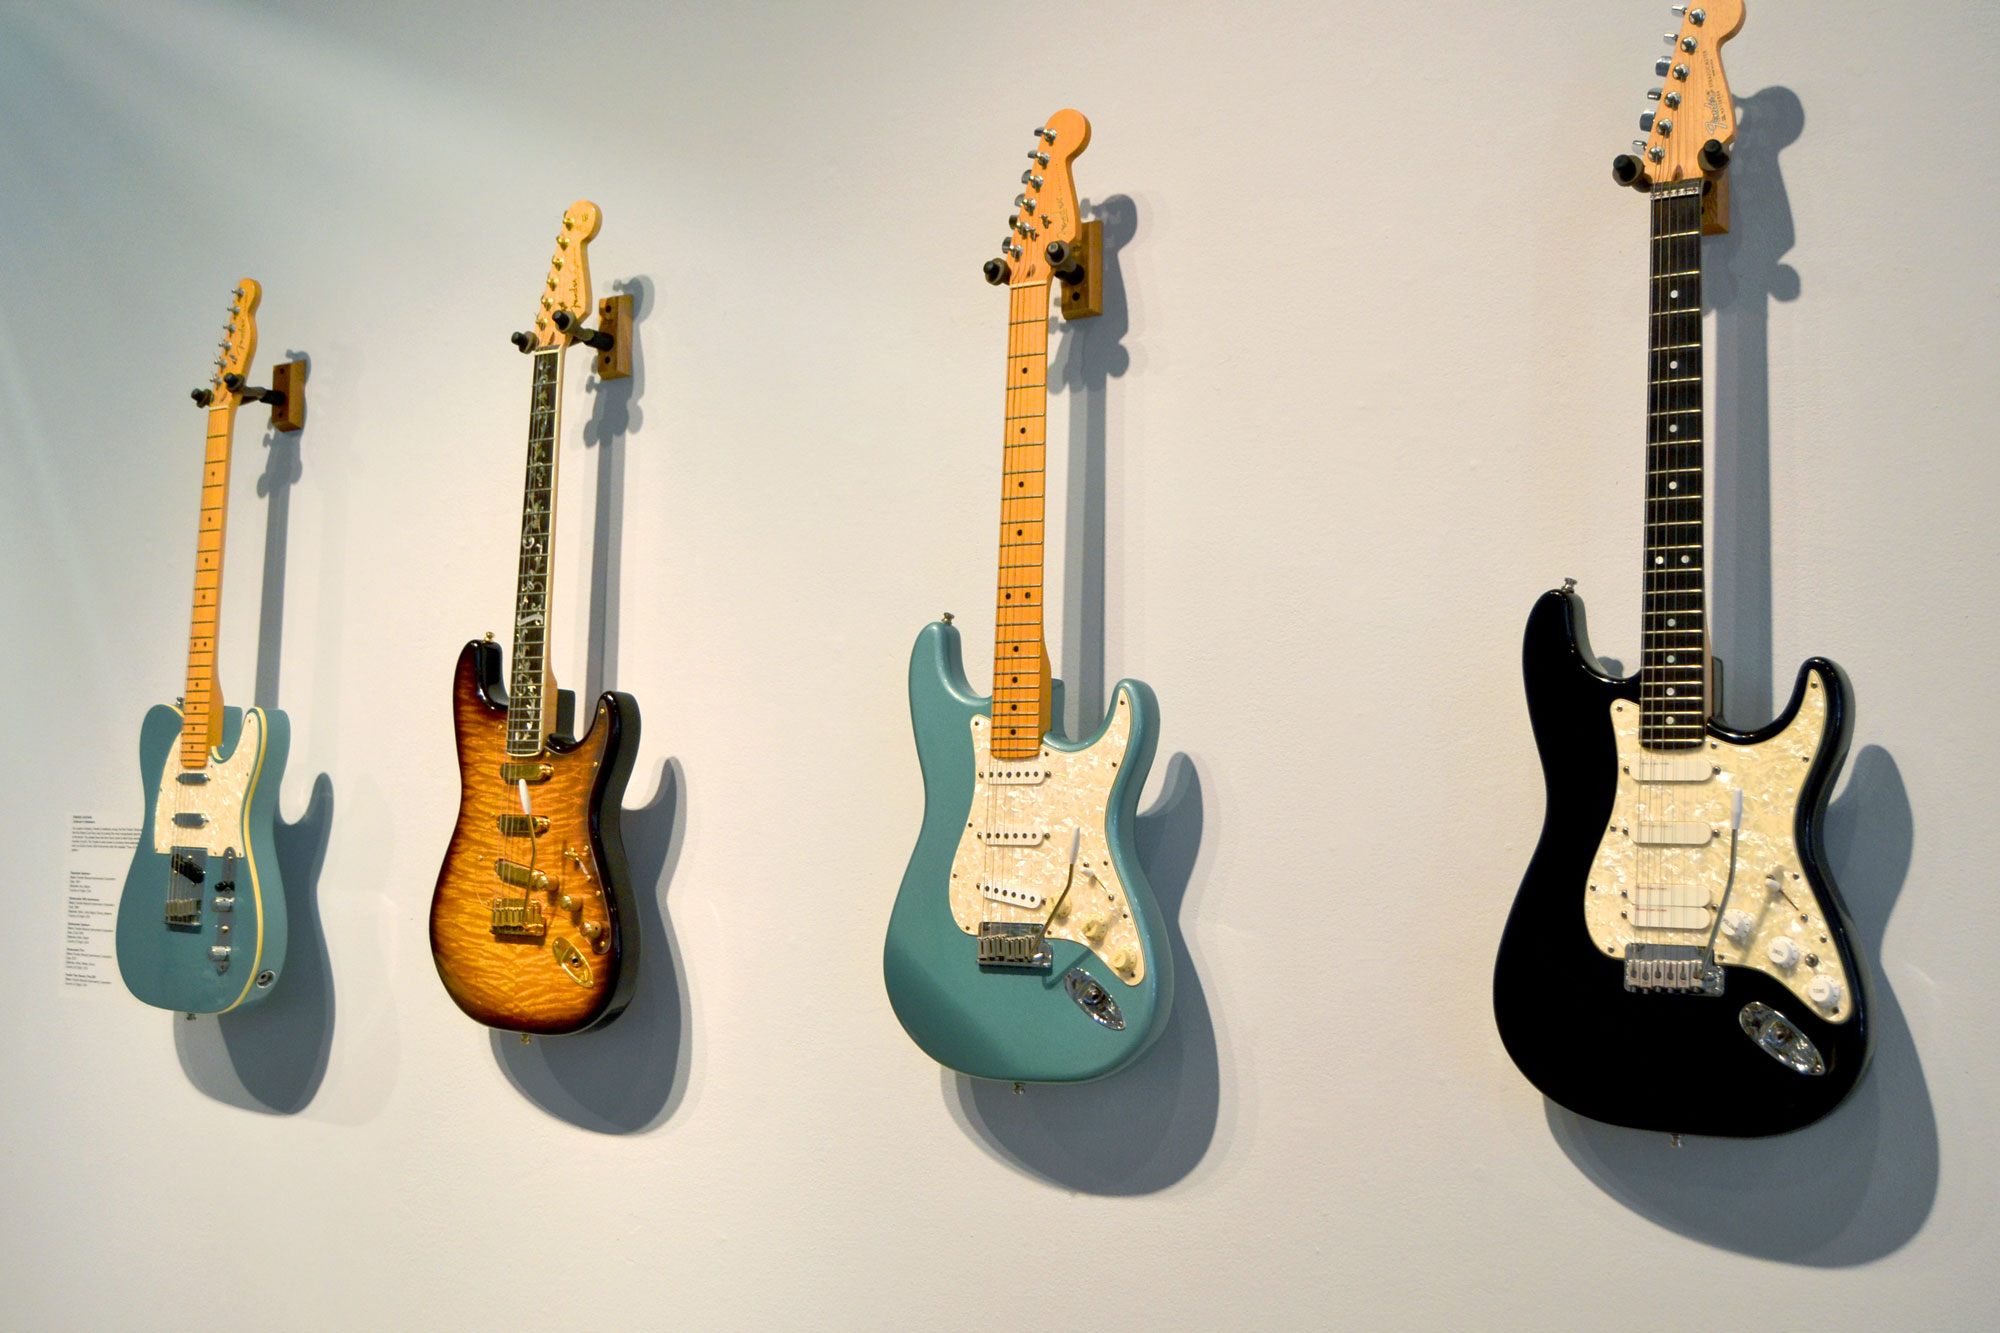 Image of guitars hanging on a gallery wall